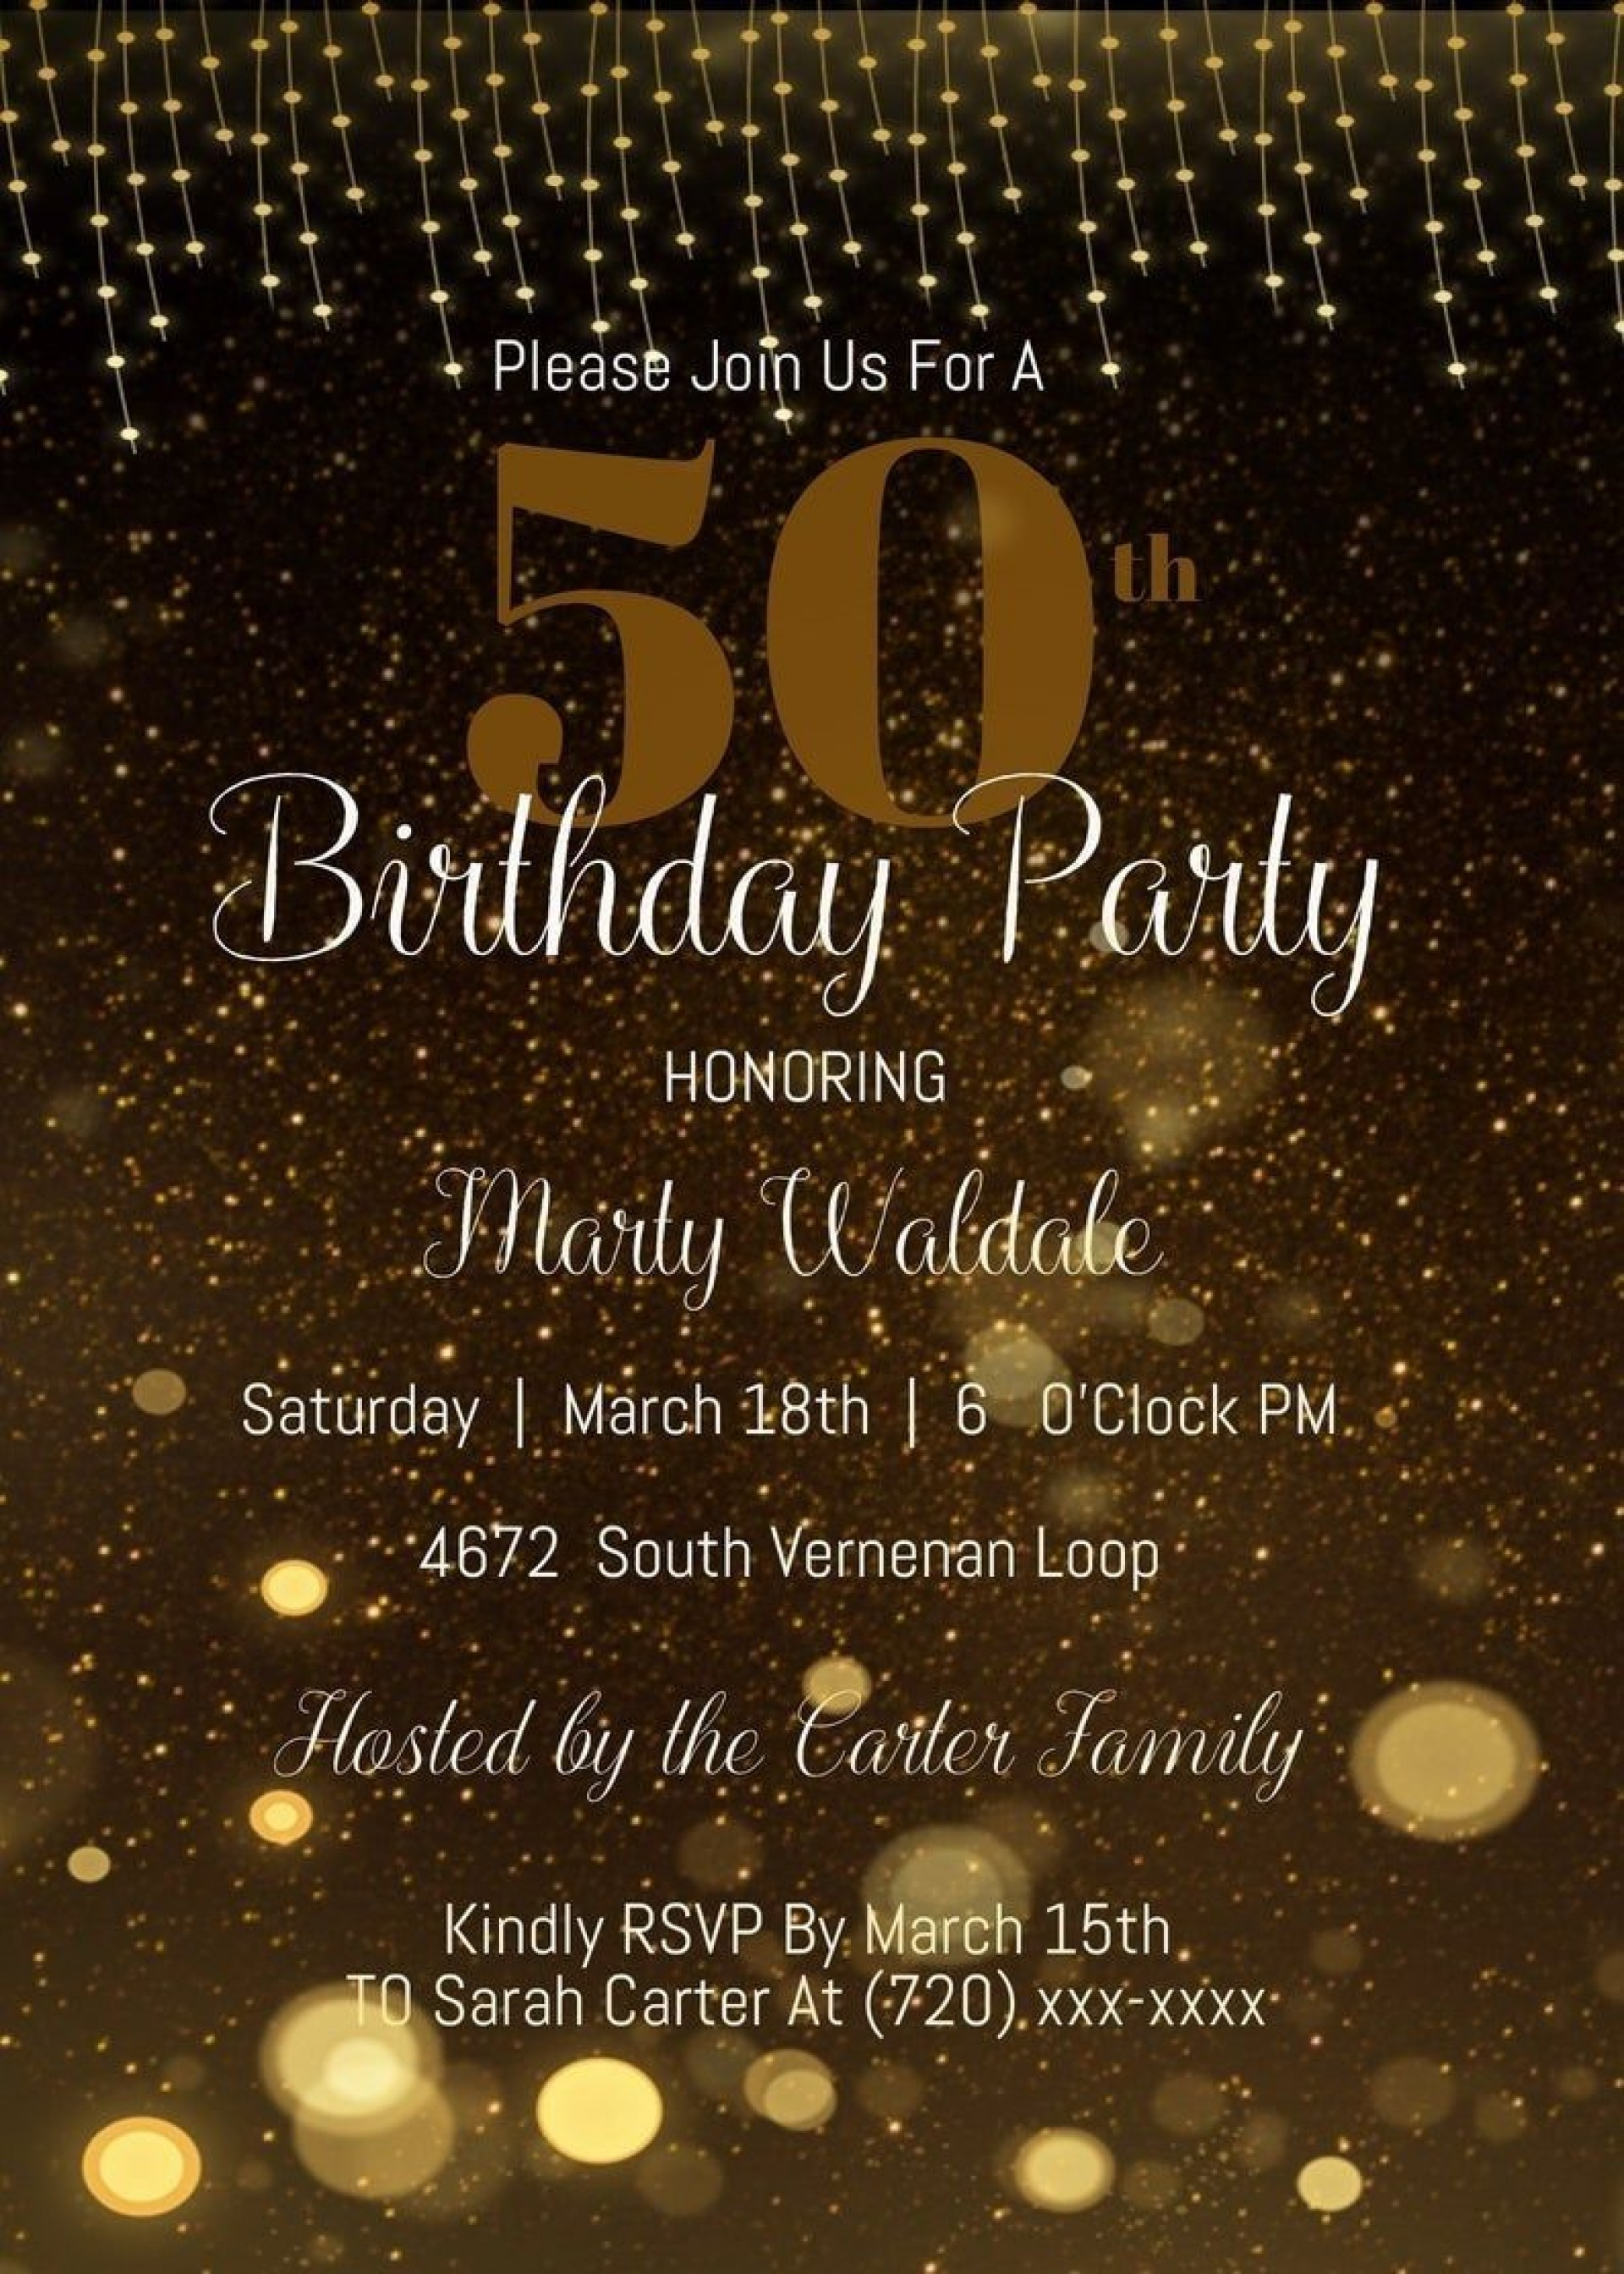 005 Formidable 50th Birthday Invitation Template High Resolution  For Him Microsoft Word Free1920